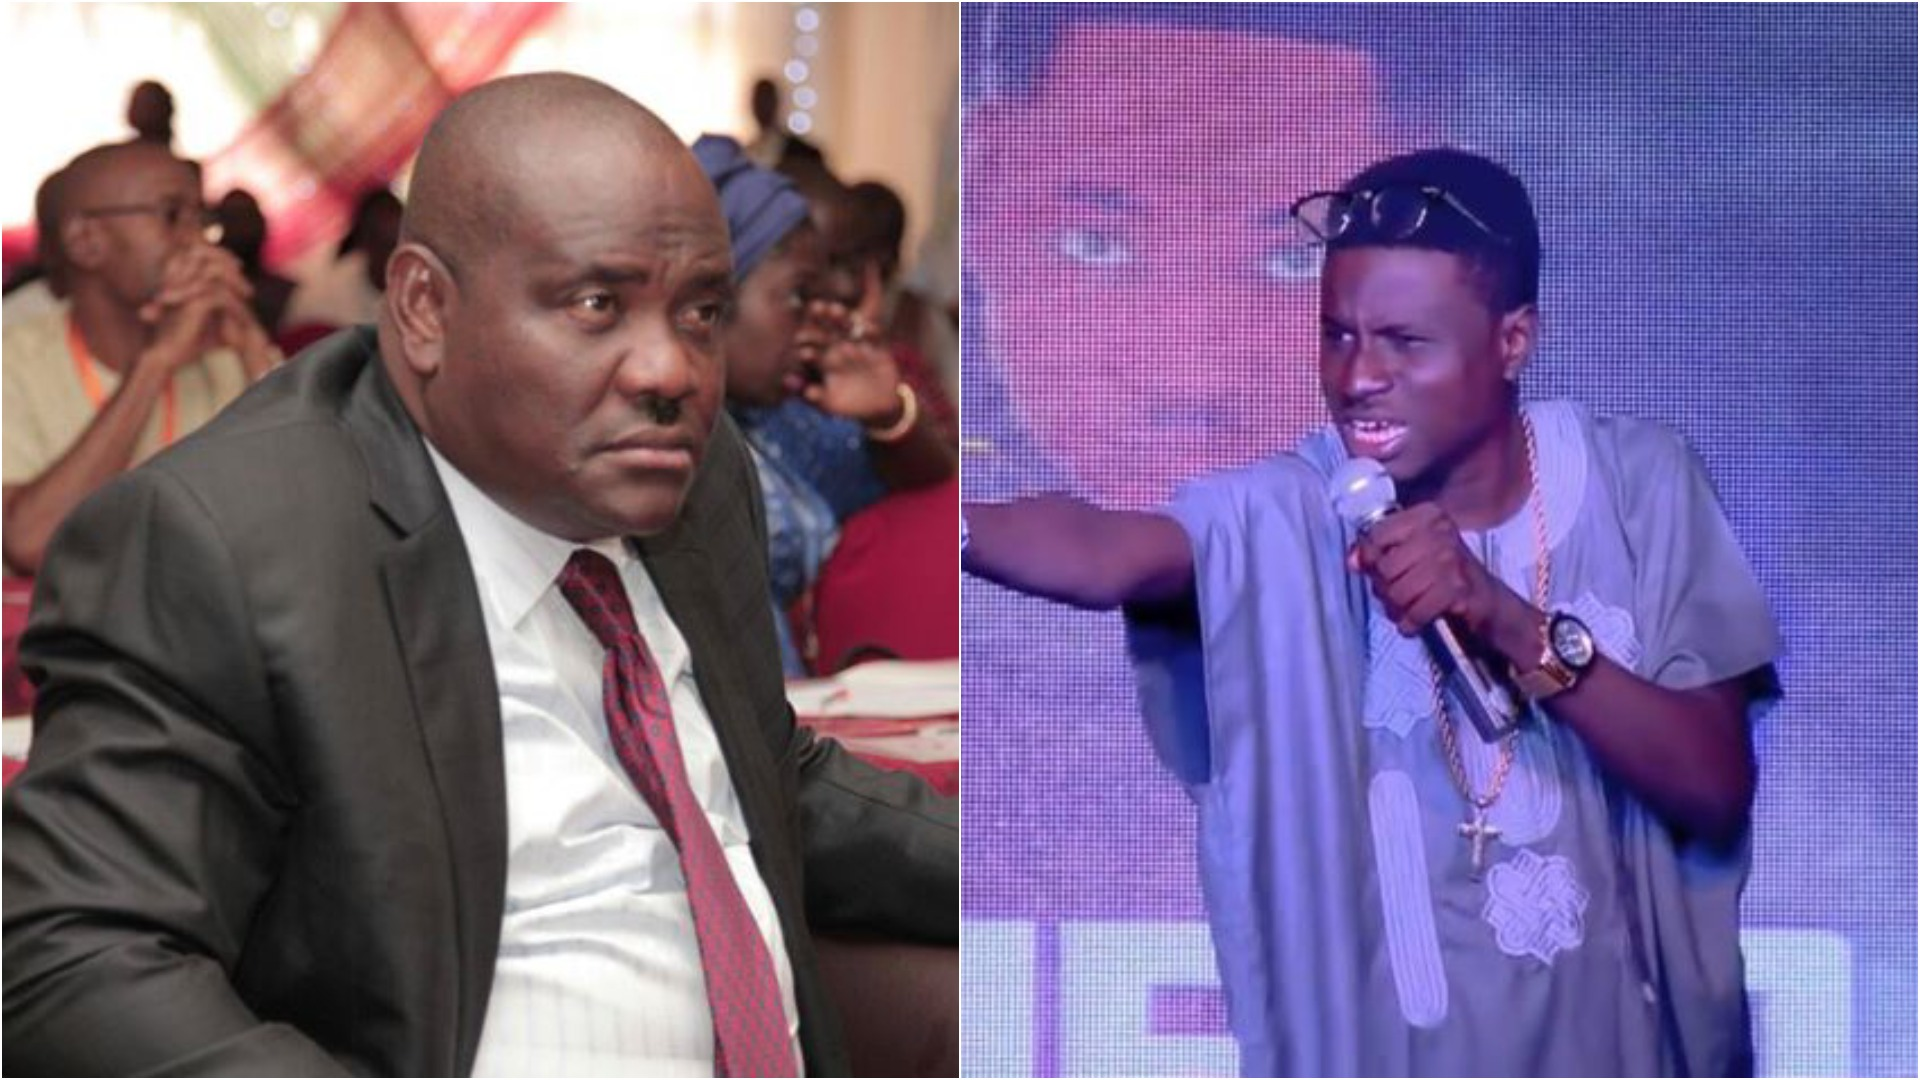 Nigerians react to 'special handshake' between Rivers governor, Nyesom Wike and comedian, Kenny Blaq